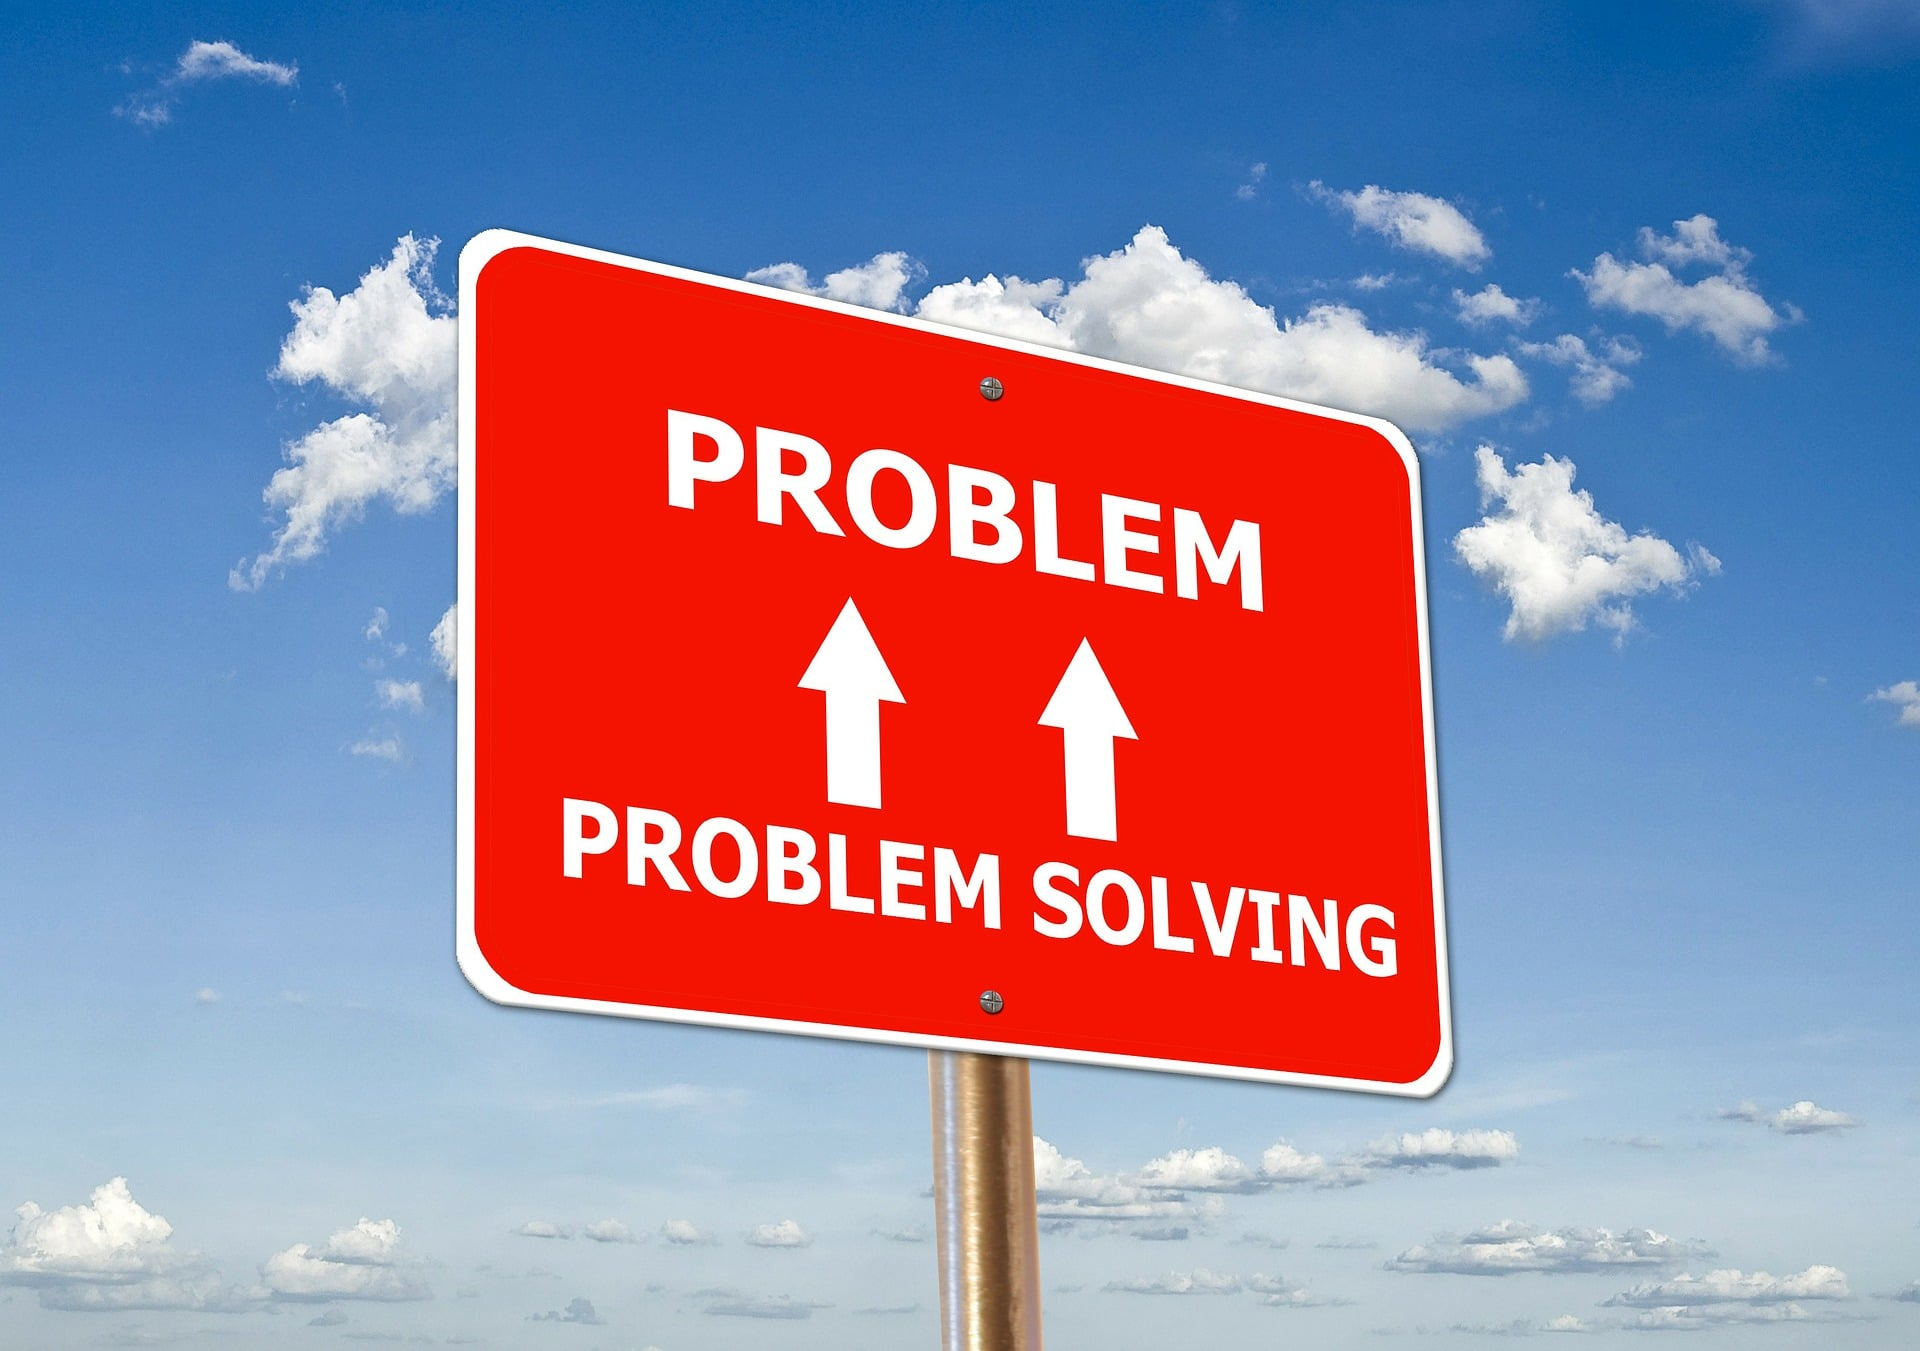 street sign showing relationship between problem and problem solving